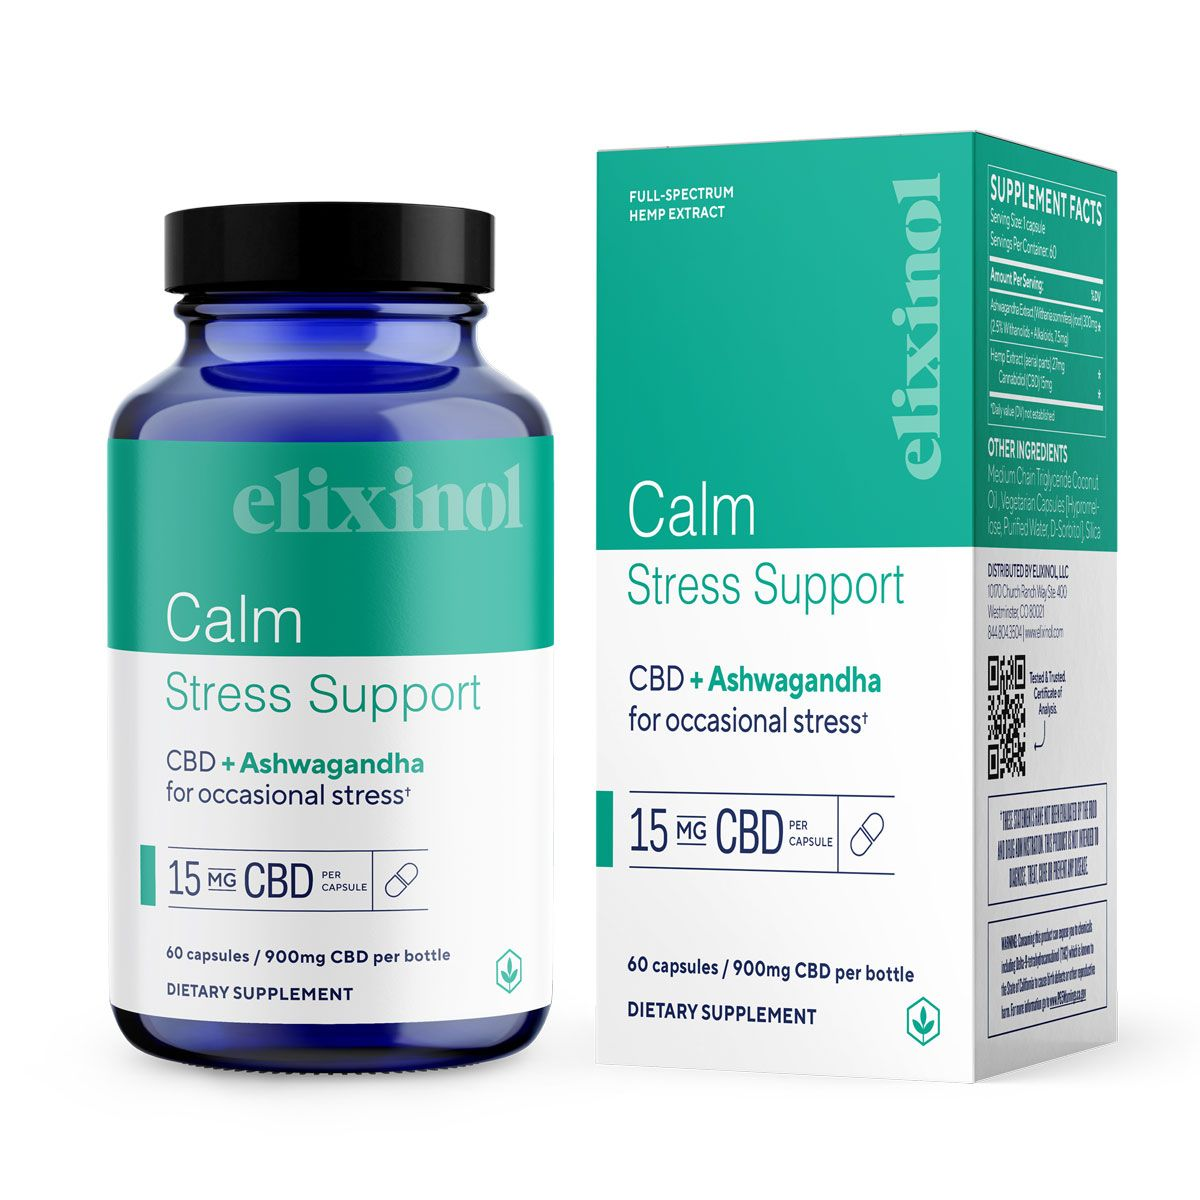 Calm Stress Support CBD + Ashwagandha 900 mg 60 Vegetarian Capsules